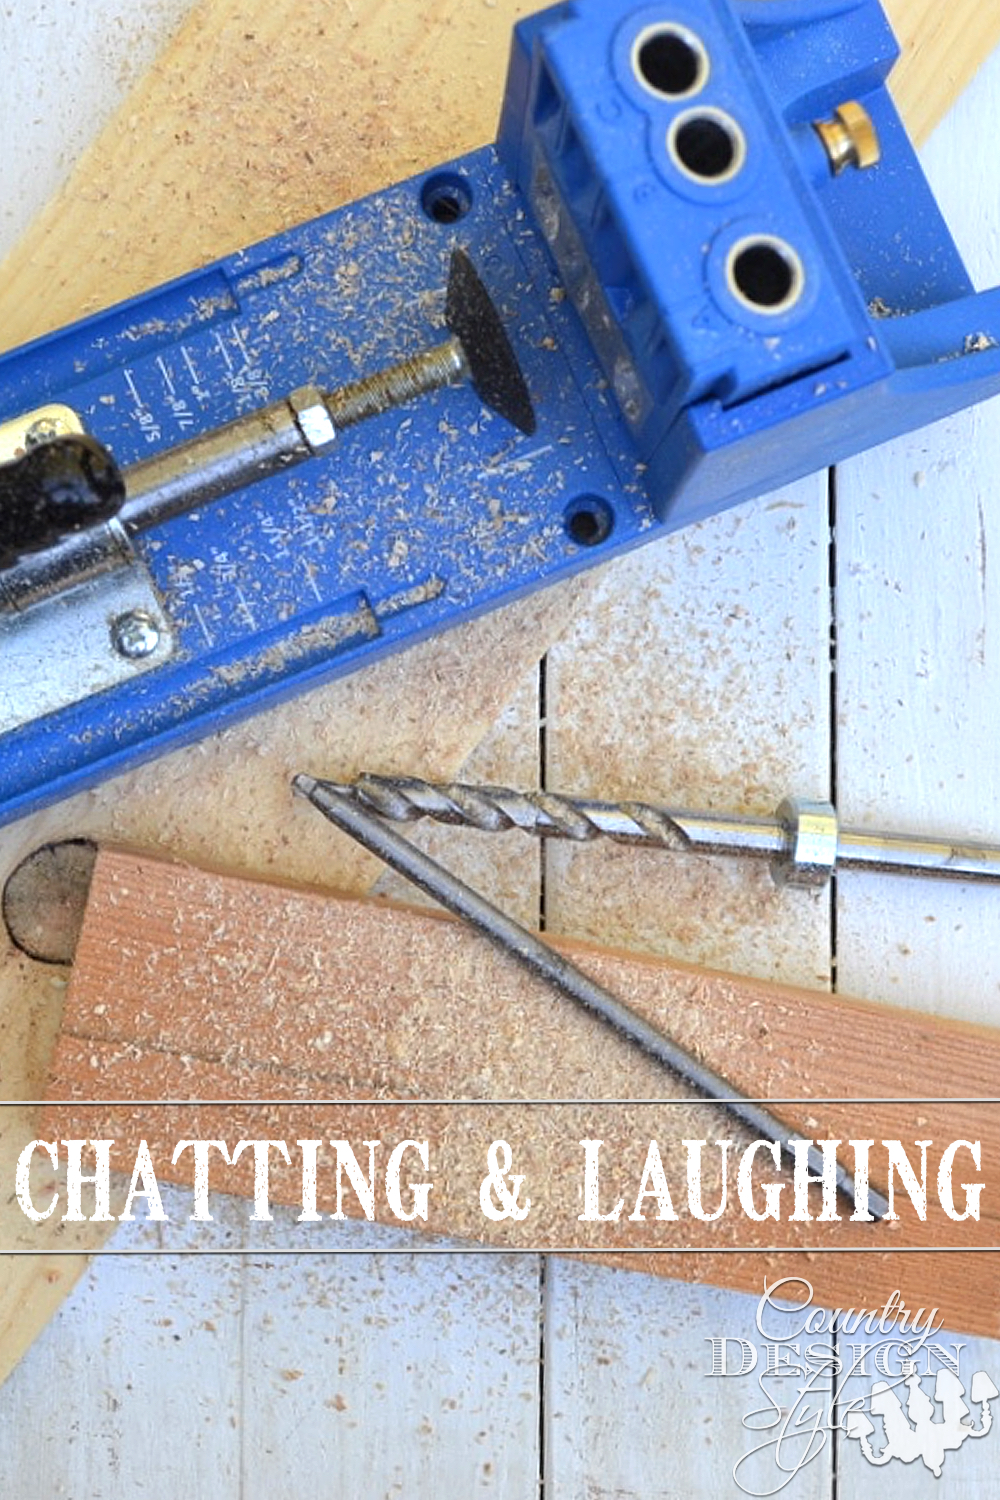 Chatting and laughing with readers in as many ways I can. Thank you for following along with the musings, DIY, tutorials, and creativity on Country Design Style